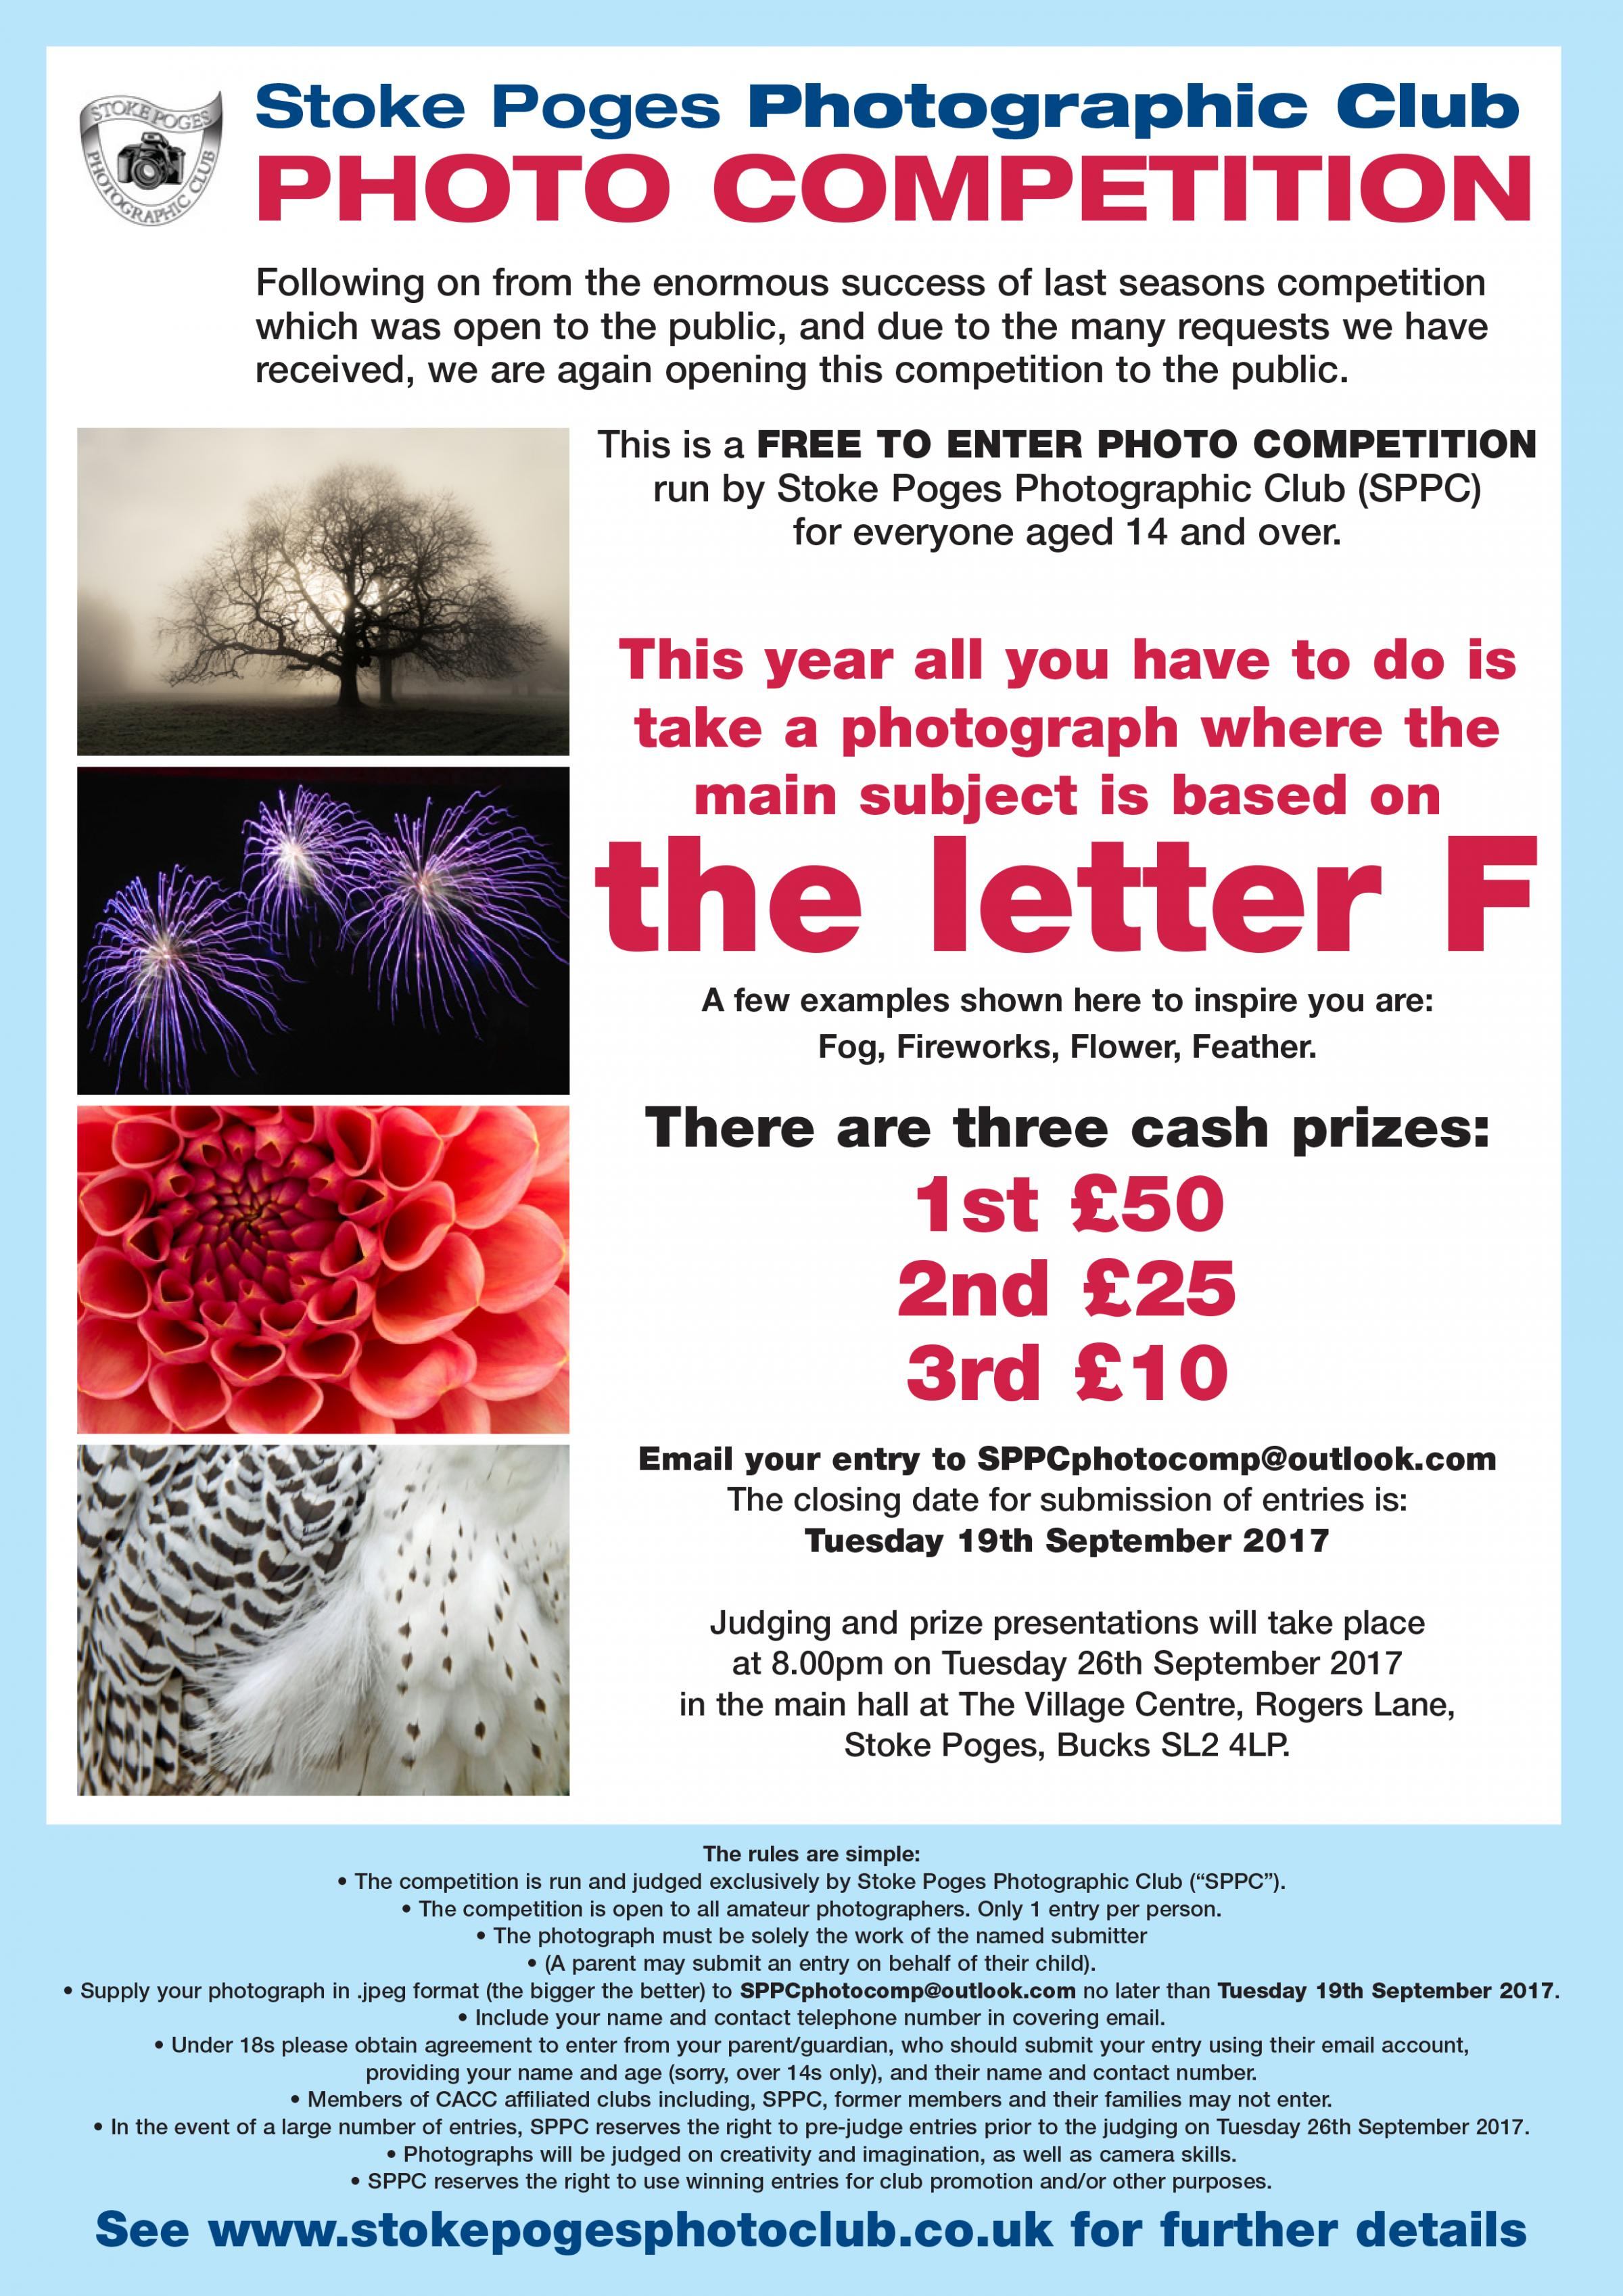 STOKE POGES PHOTO COMPETITION